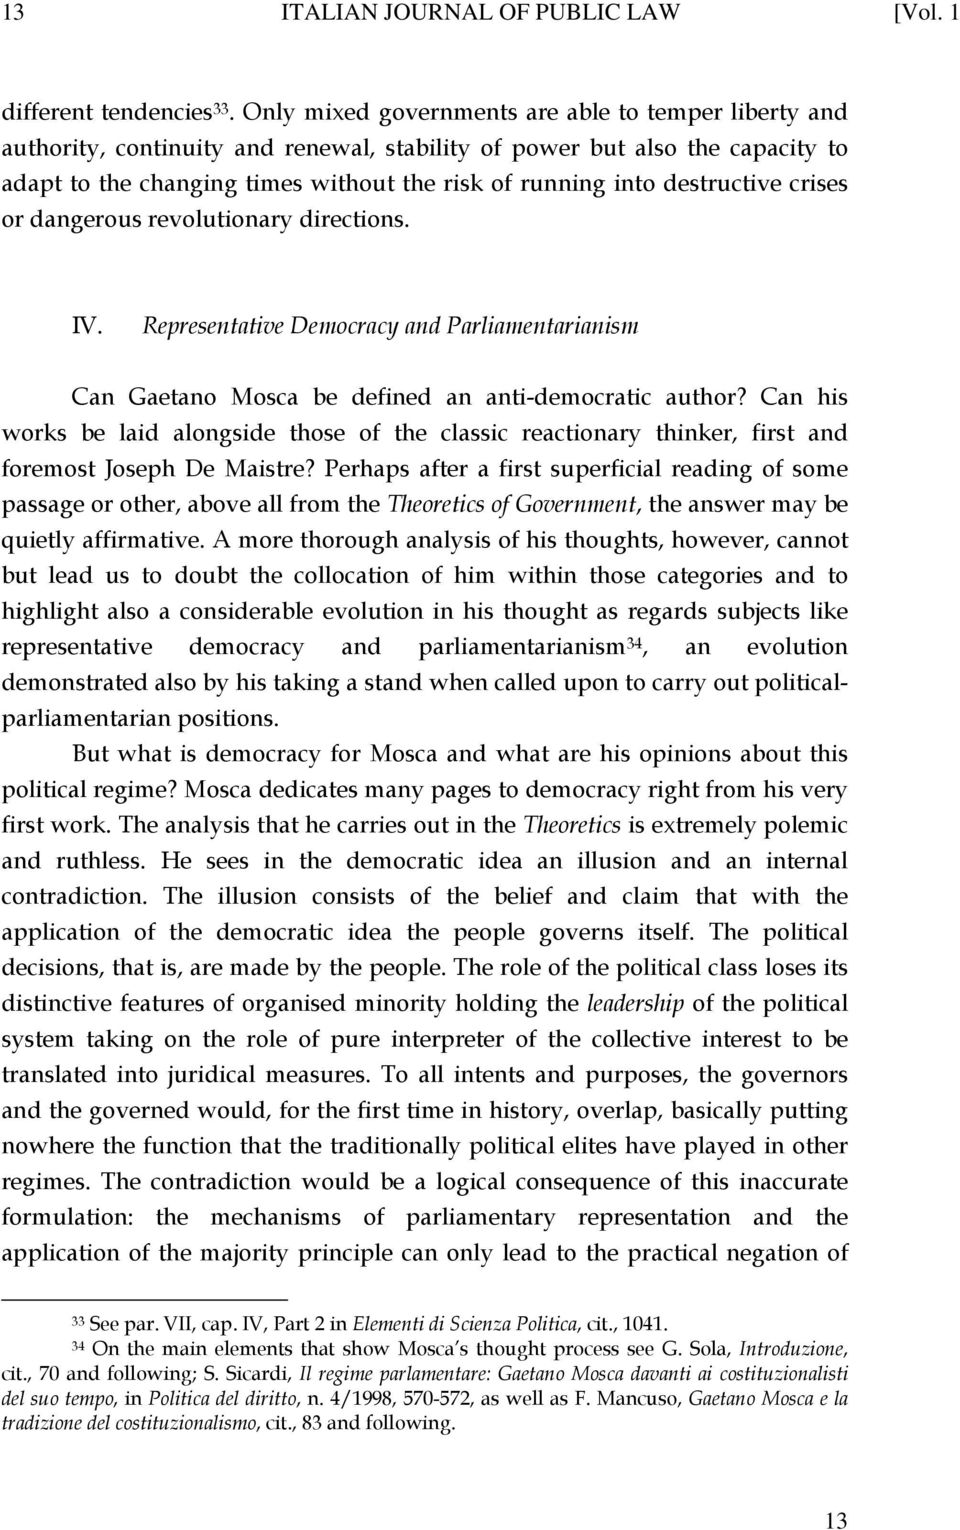 destructive crises or dangerous revolutionary directions. IV. Representative Democracy and Parliamentarianism Can Gaetano Mosca be defined an anti-democratic author?